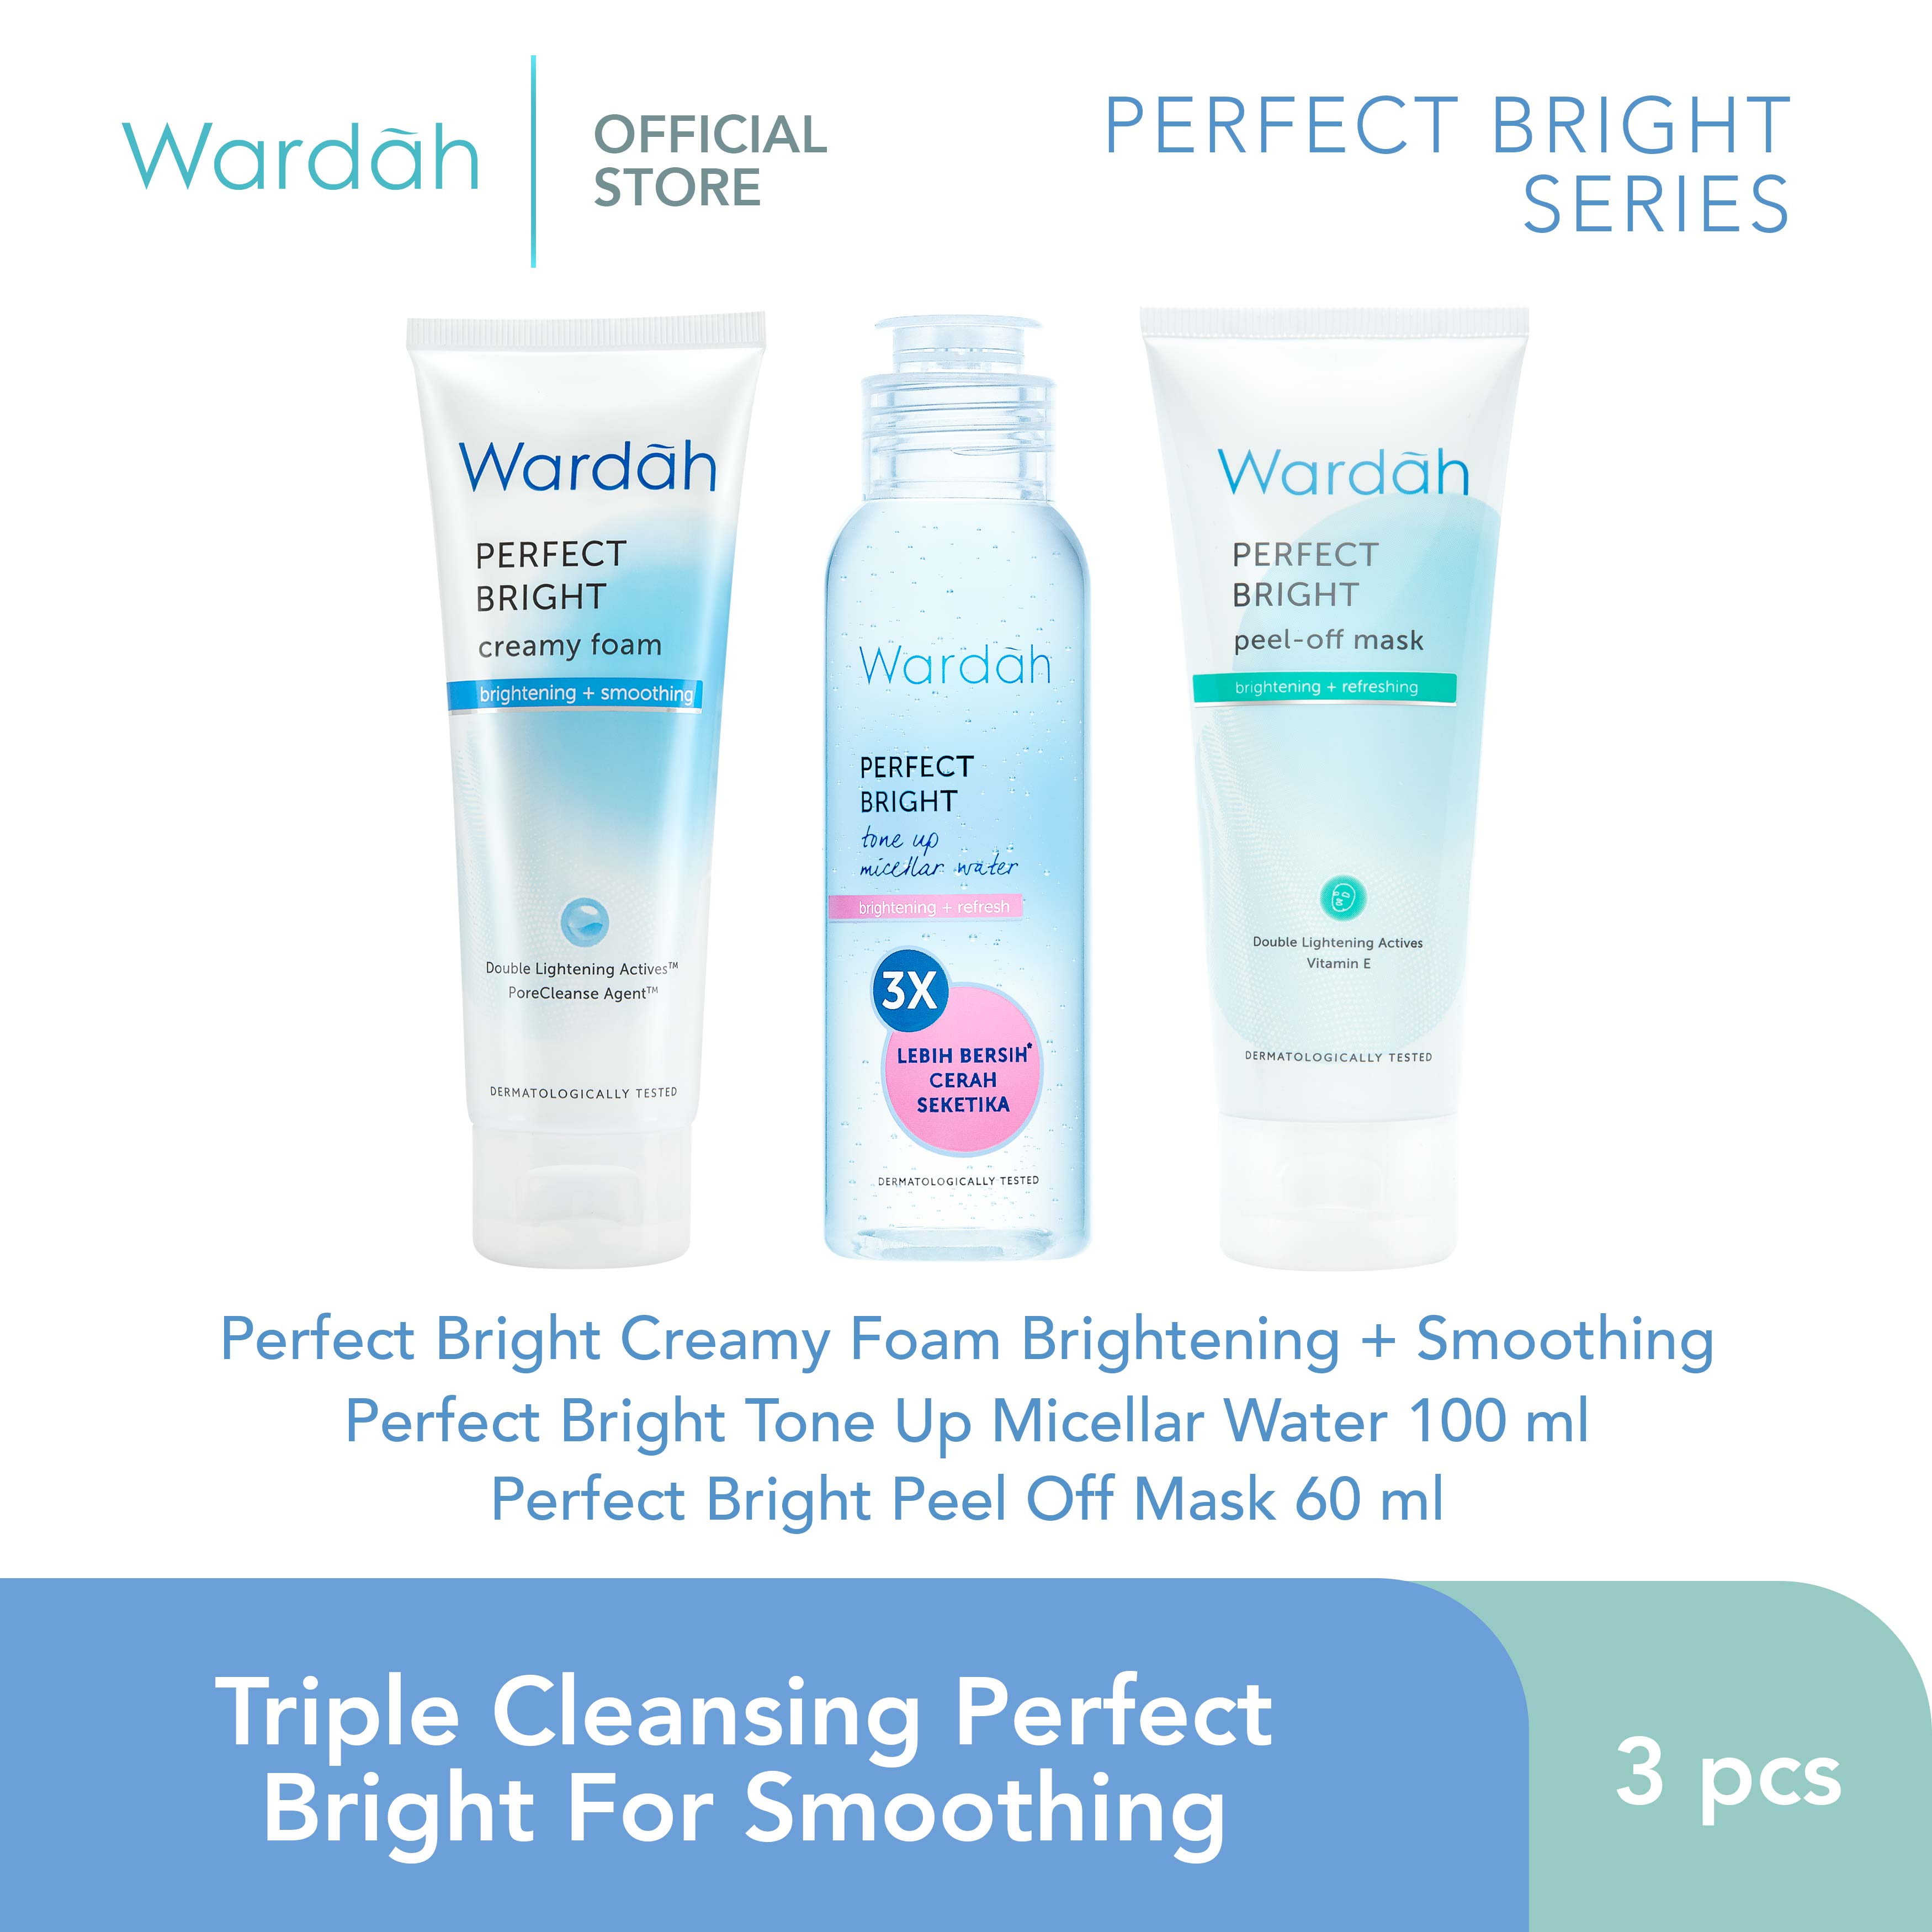 Triple Cleansing Perfect Bright For Smoothing